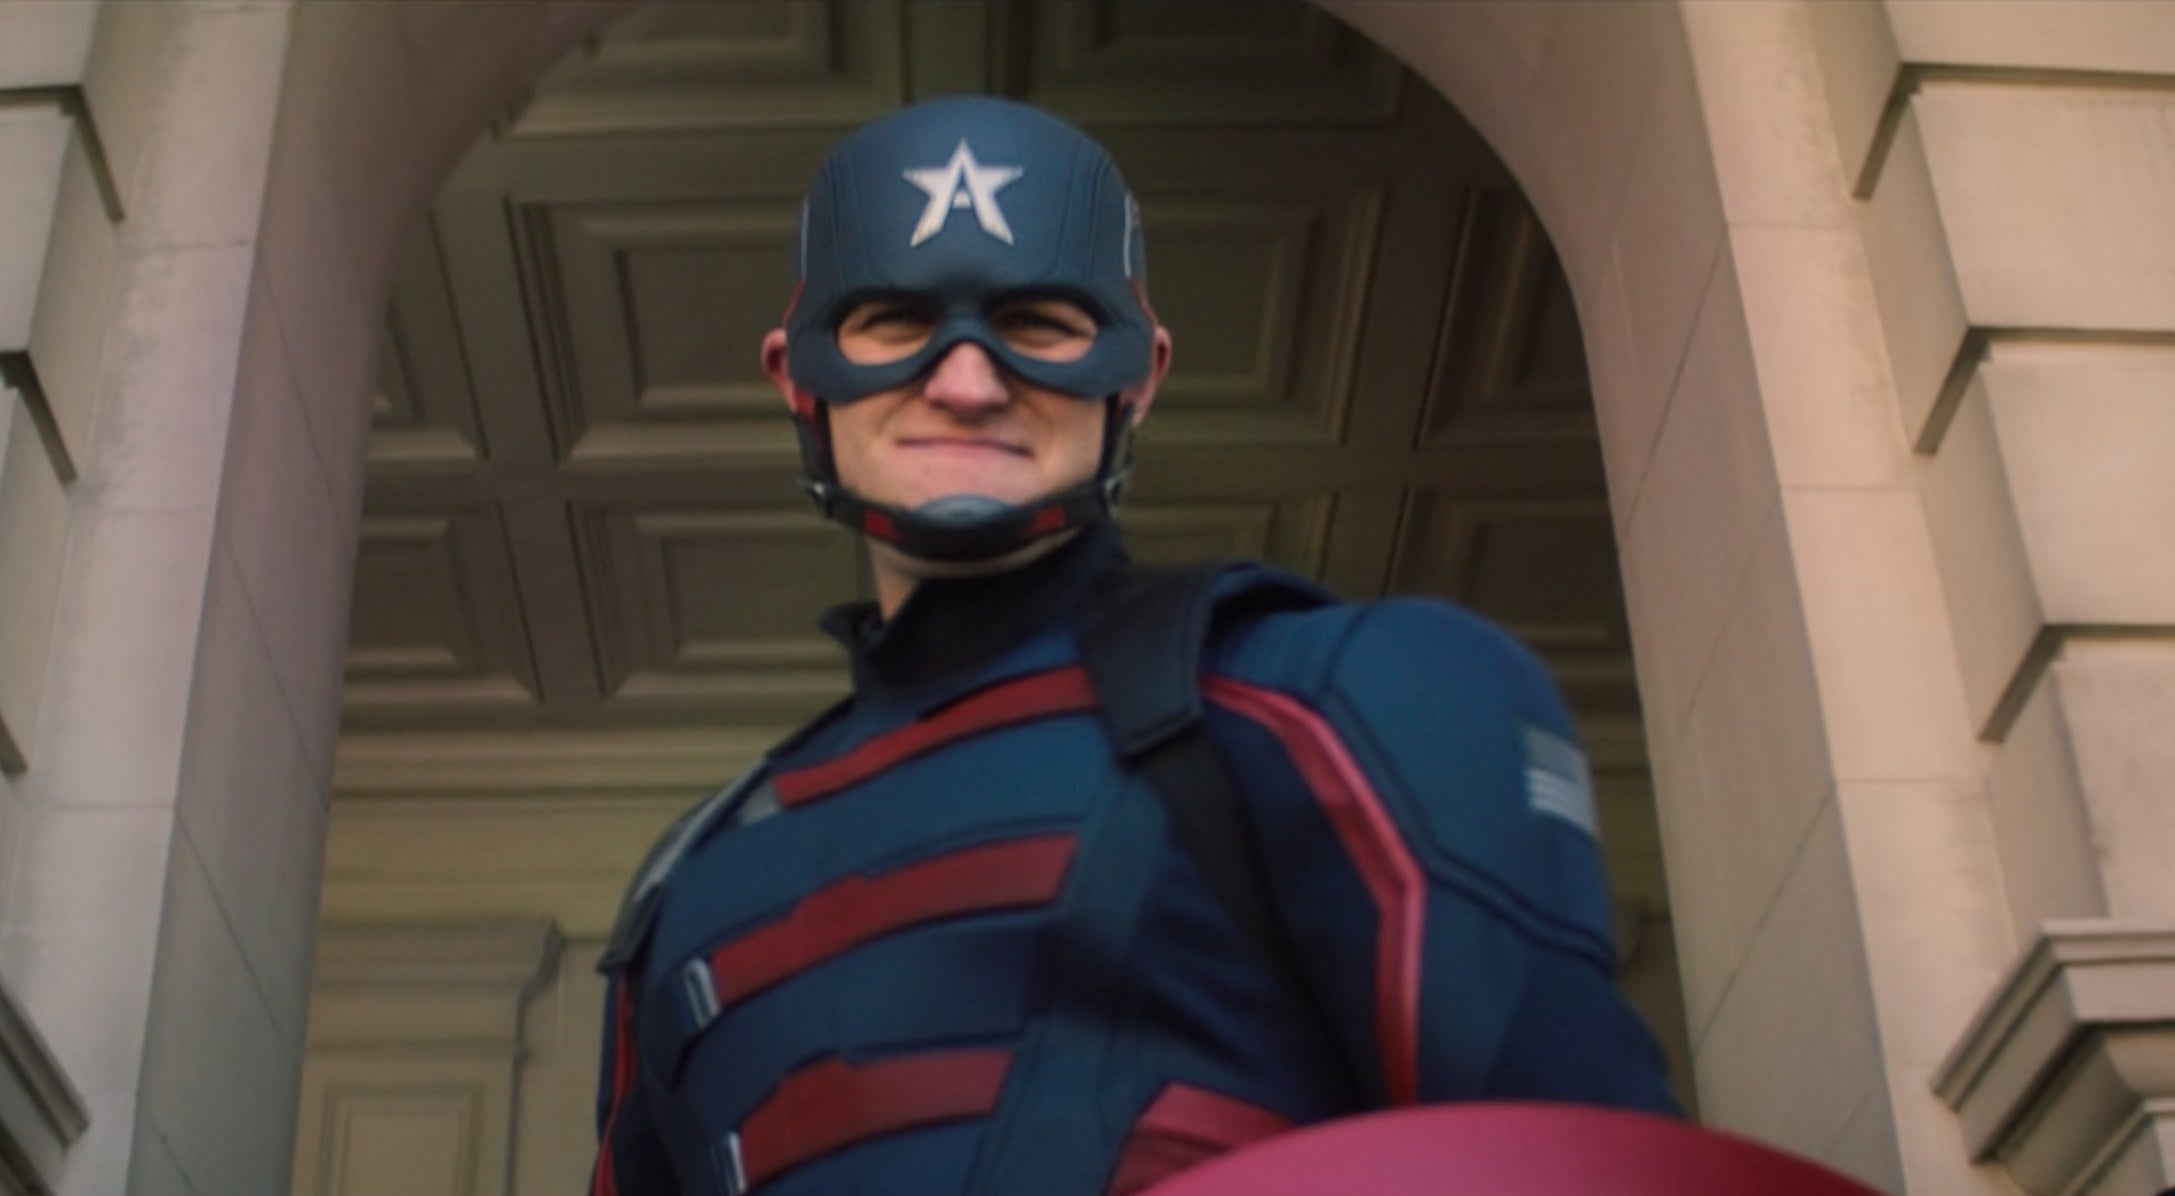 The US agent as the new Captain America